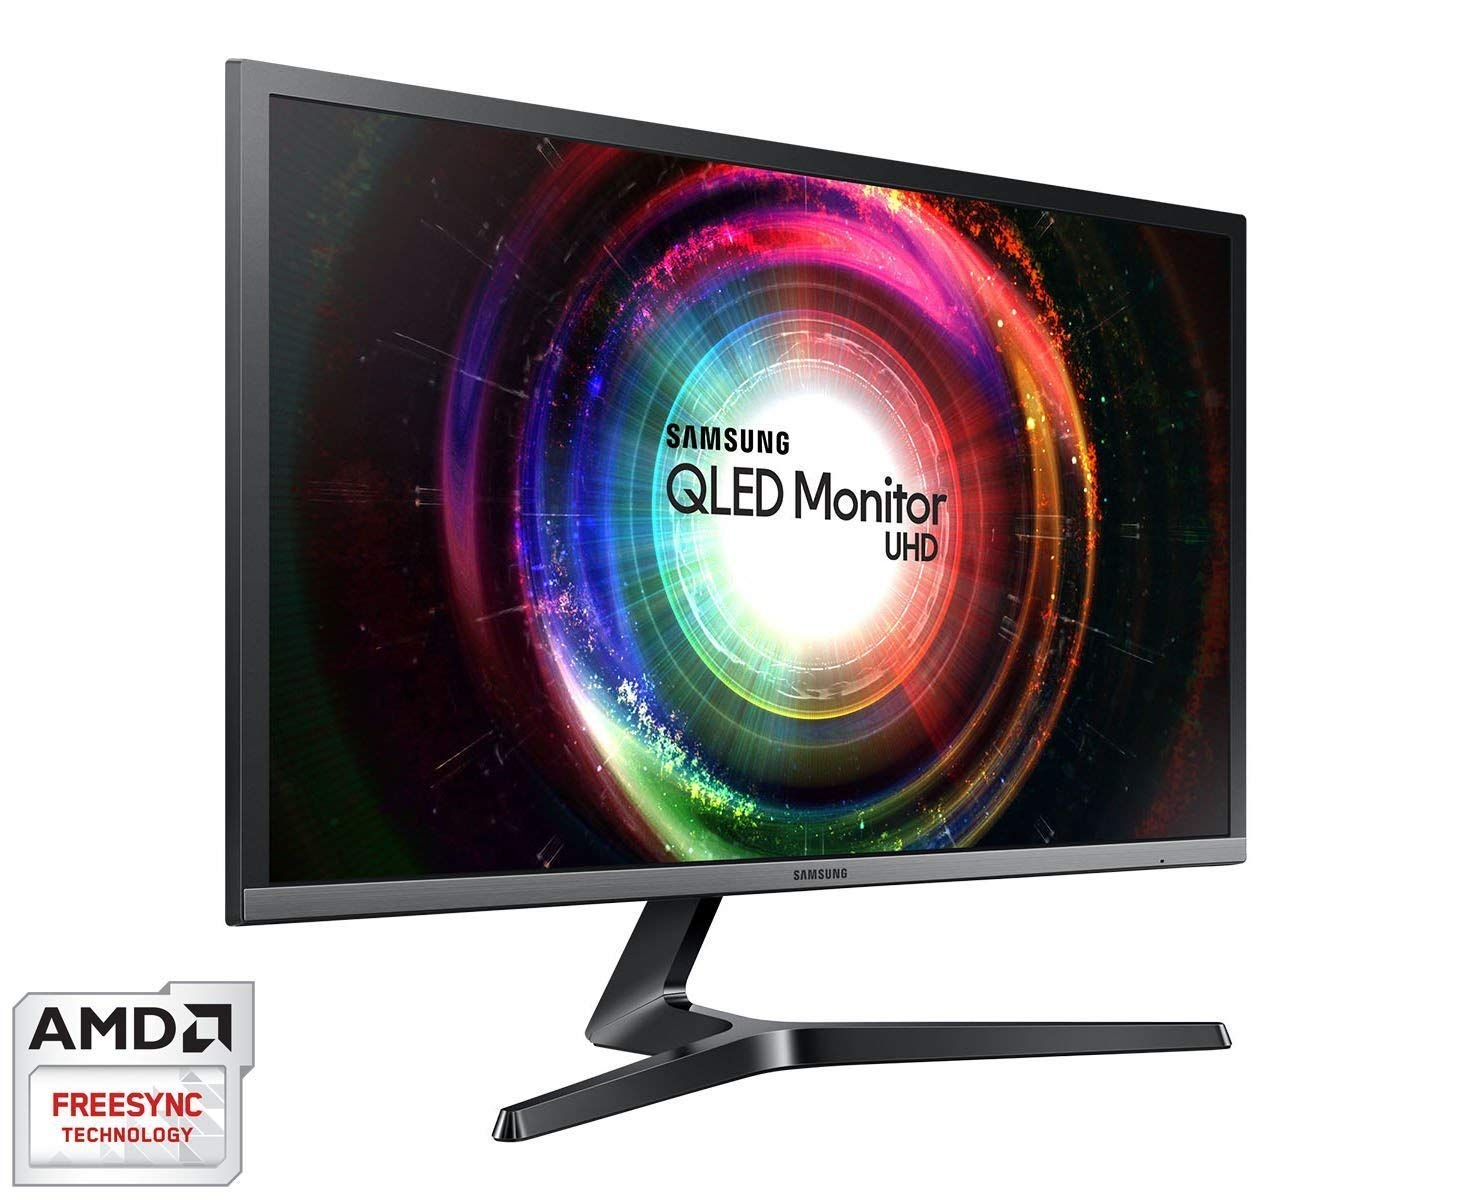 Samsung U8H8 8.8 inch (8 cm) UHD 8K LED Gaming Monitor